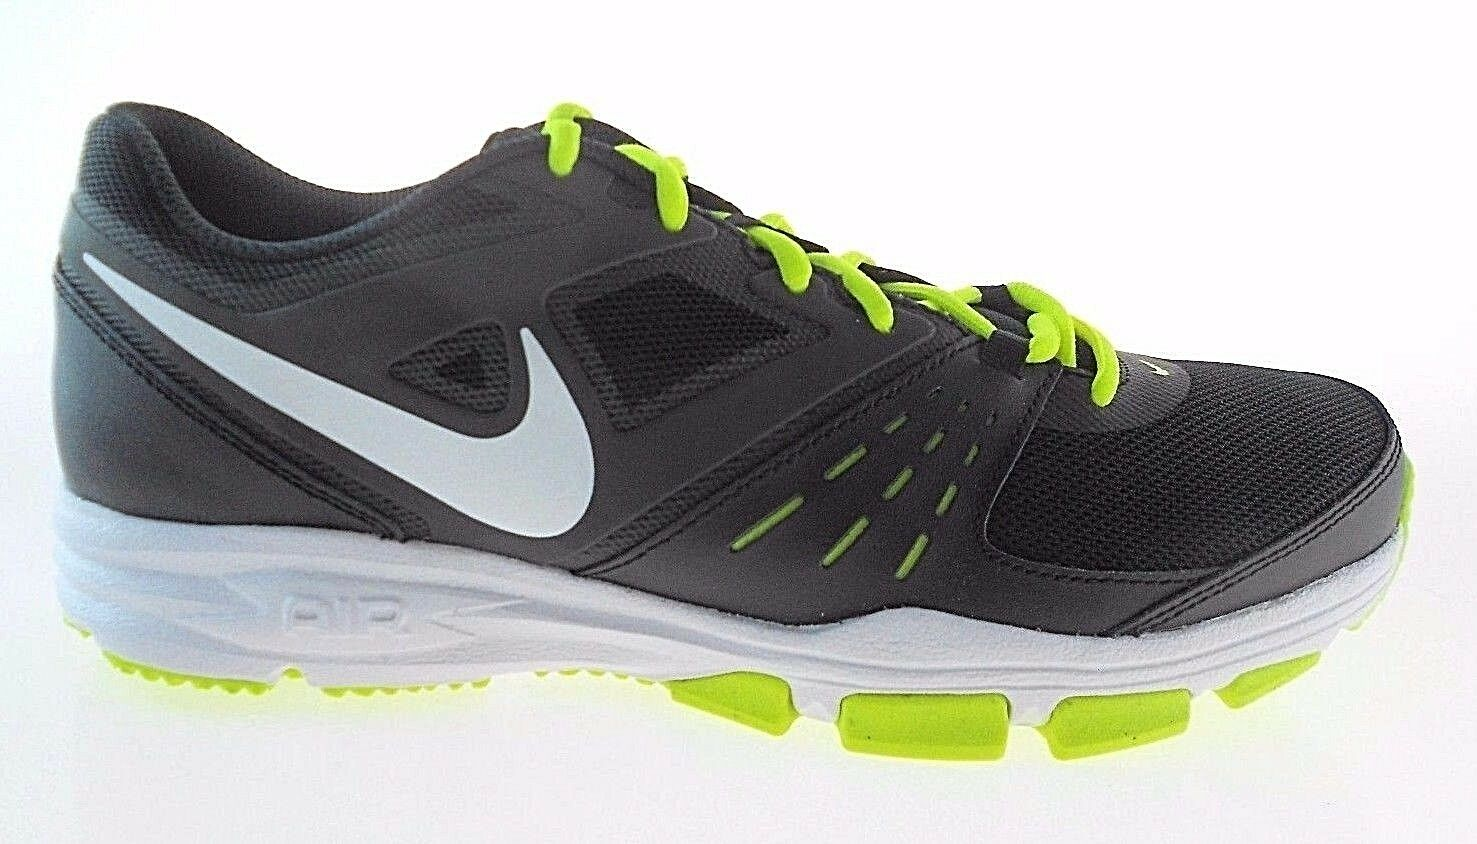 NIKE AIR ONE TR MEN'S BLACKVOLT TRAINING SHOES, #631276 008